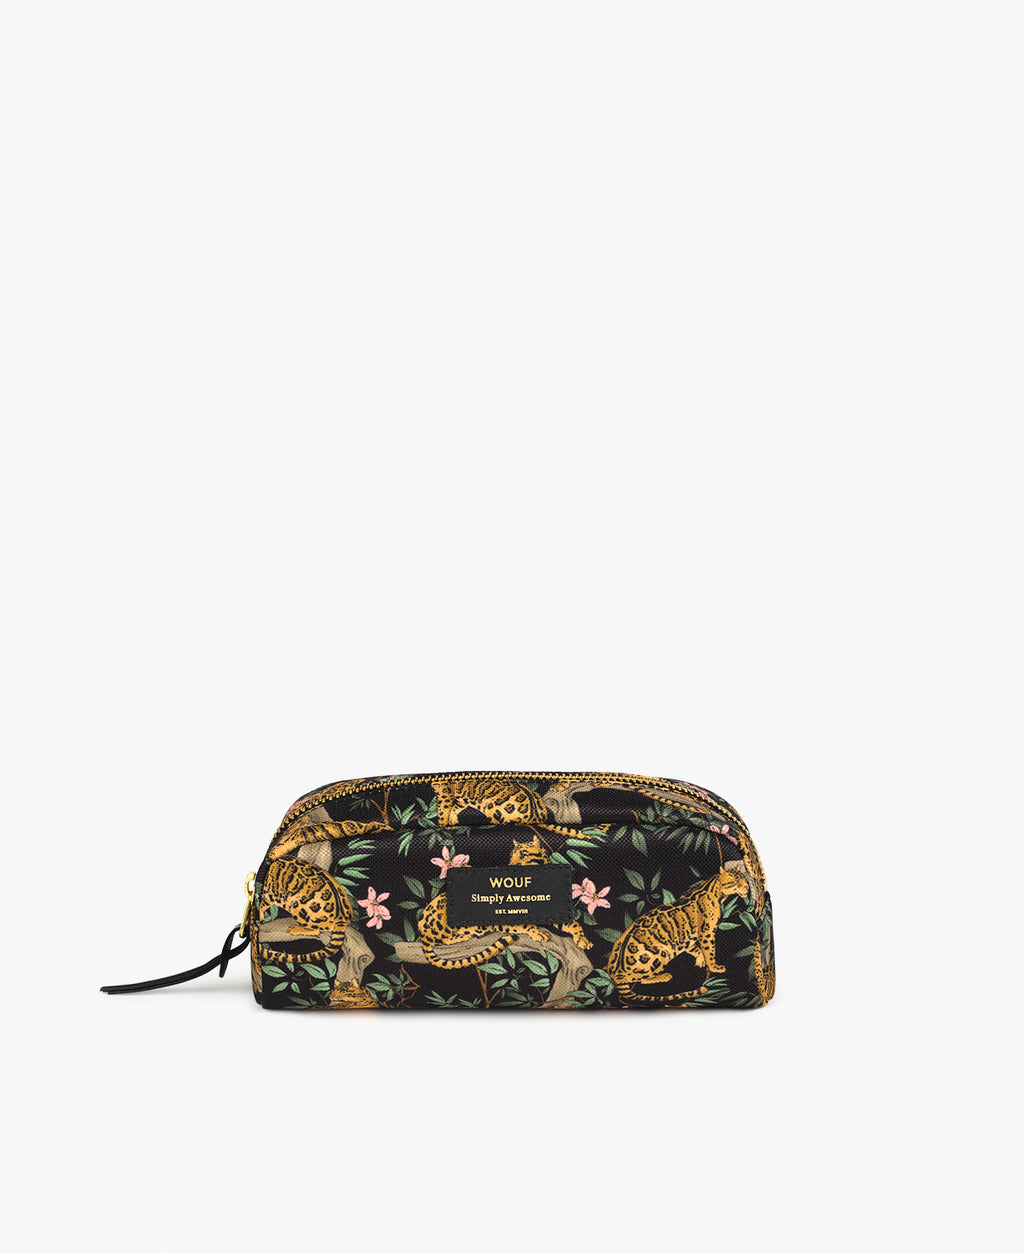 Lazy Jungle Small Beauty-Black